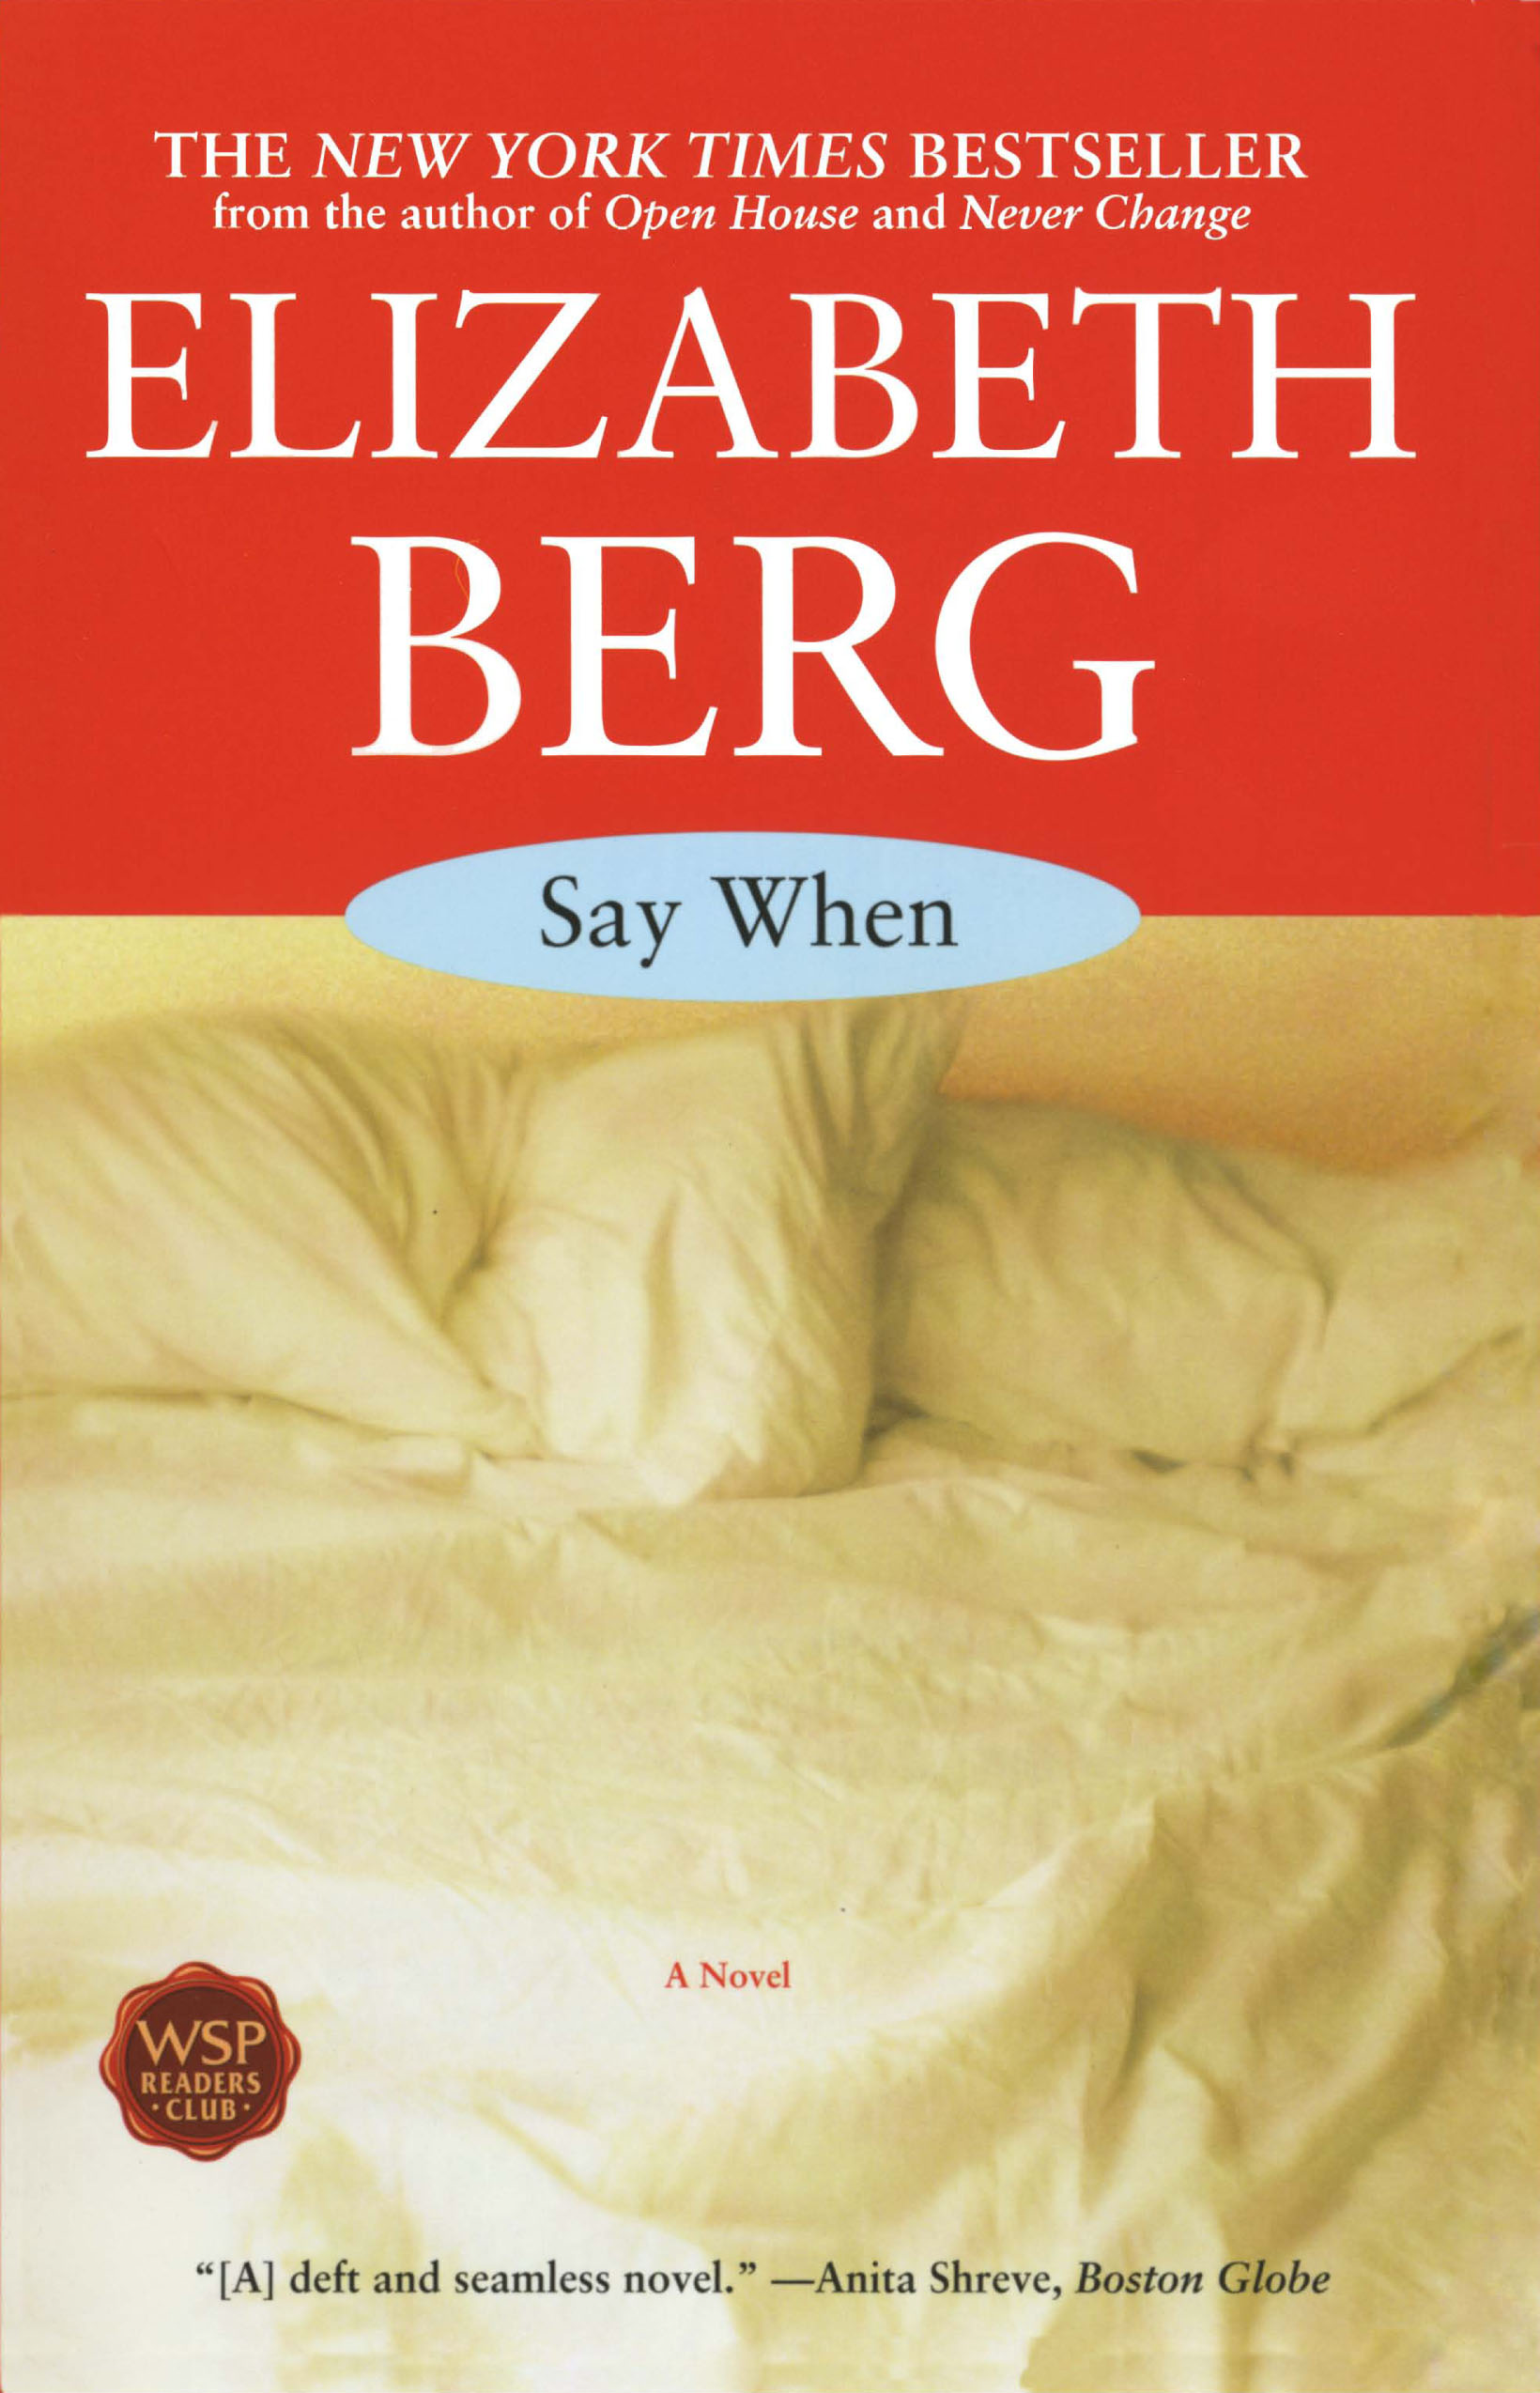 Elizabeth berg official publisher page simon schuster canada ebook 9780743421829 fandeluxe Document